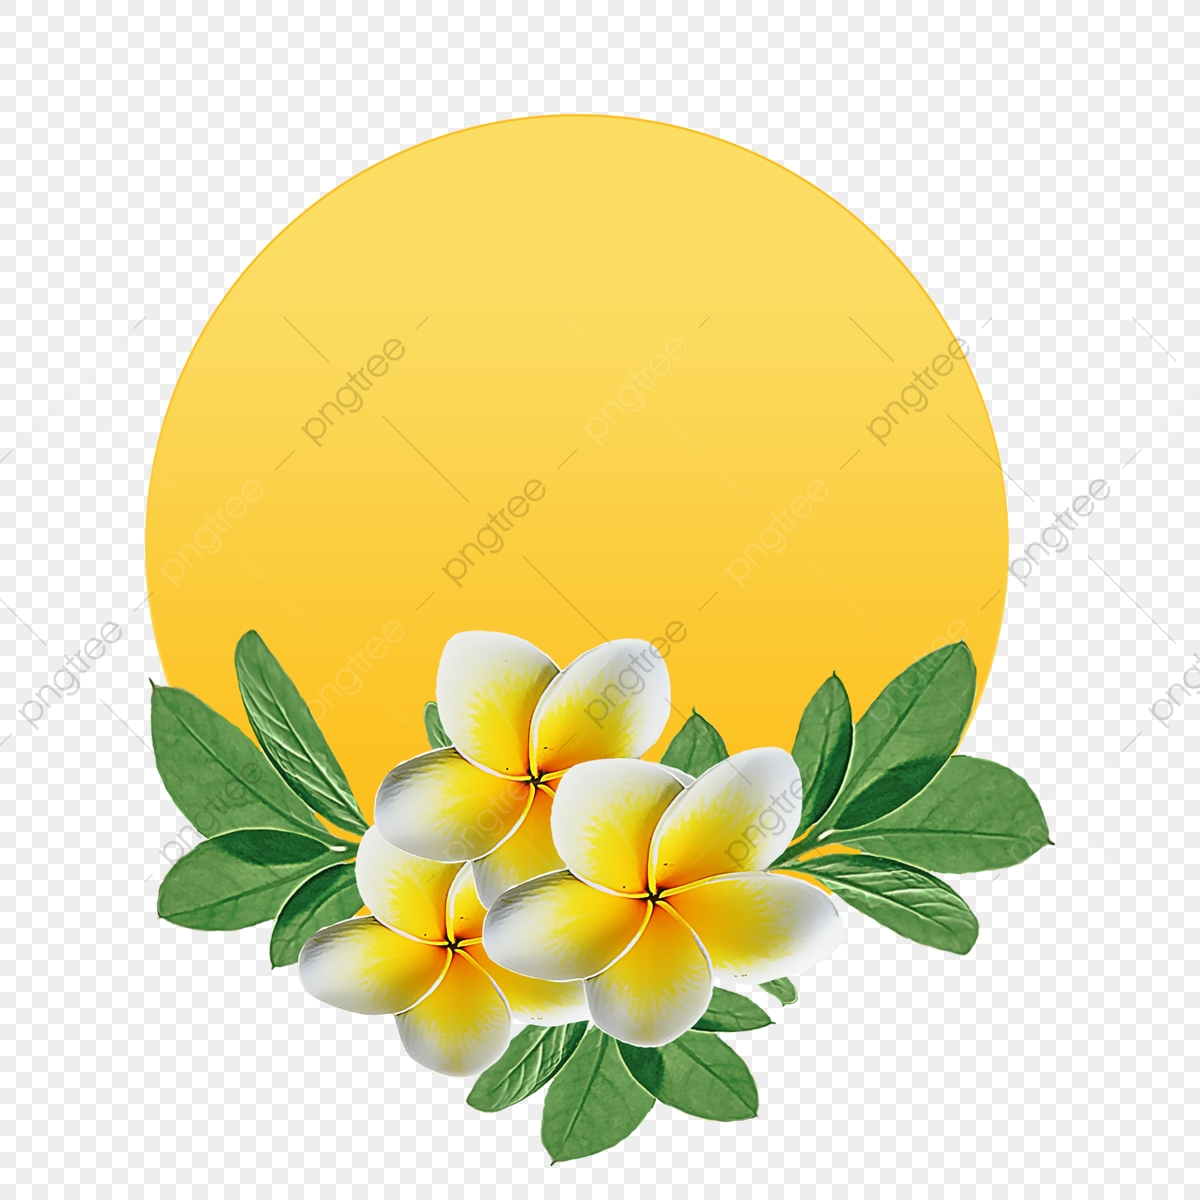 watercolor flower yellow flowers round background flowers flower natural png transparent clipart image and psd file for free download https pngtree com freepng watercolor flower yellow flowers round background 4049365 html